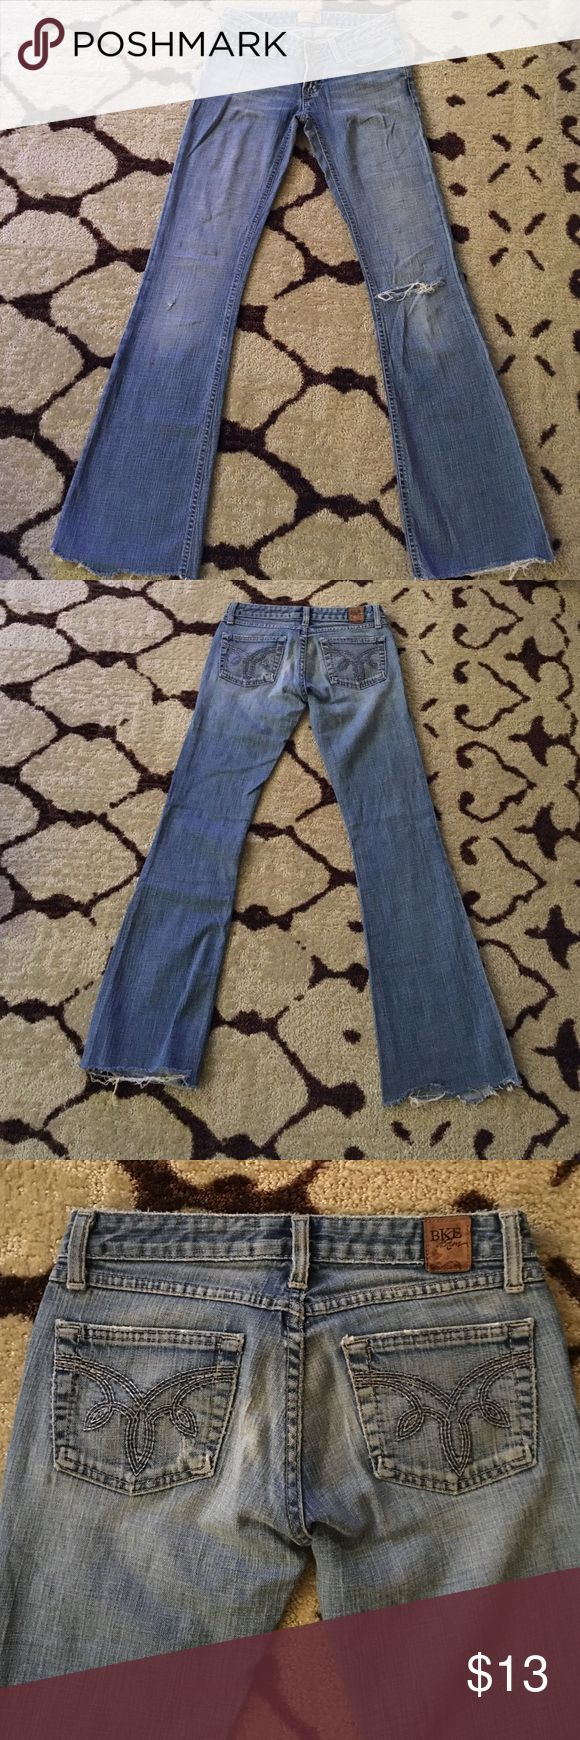 BKE stretch boot cut jeans size 25 BKE jeans size 25. Stretch boot cut low rise. Bottoms are cut to make the inseam 31 inches. The legs are frayed at the bottom one hole in the left knee and a tiny start of a hole on right side near knee. Denim is nicely worn and soft. BKE Jeans Boot Cut